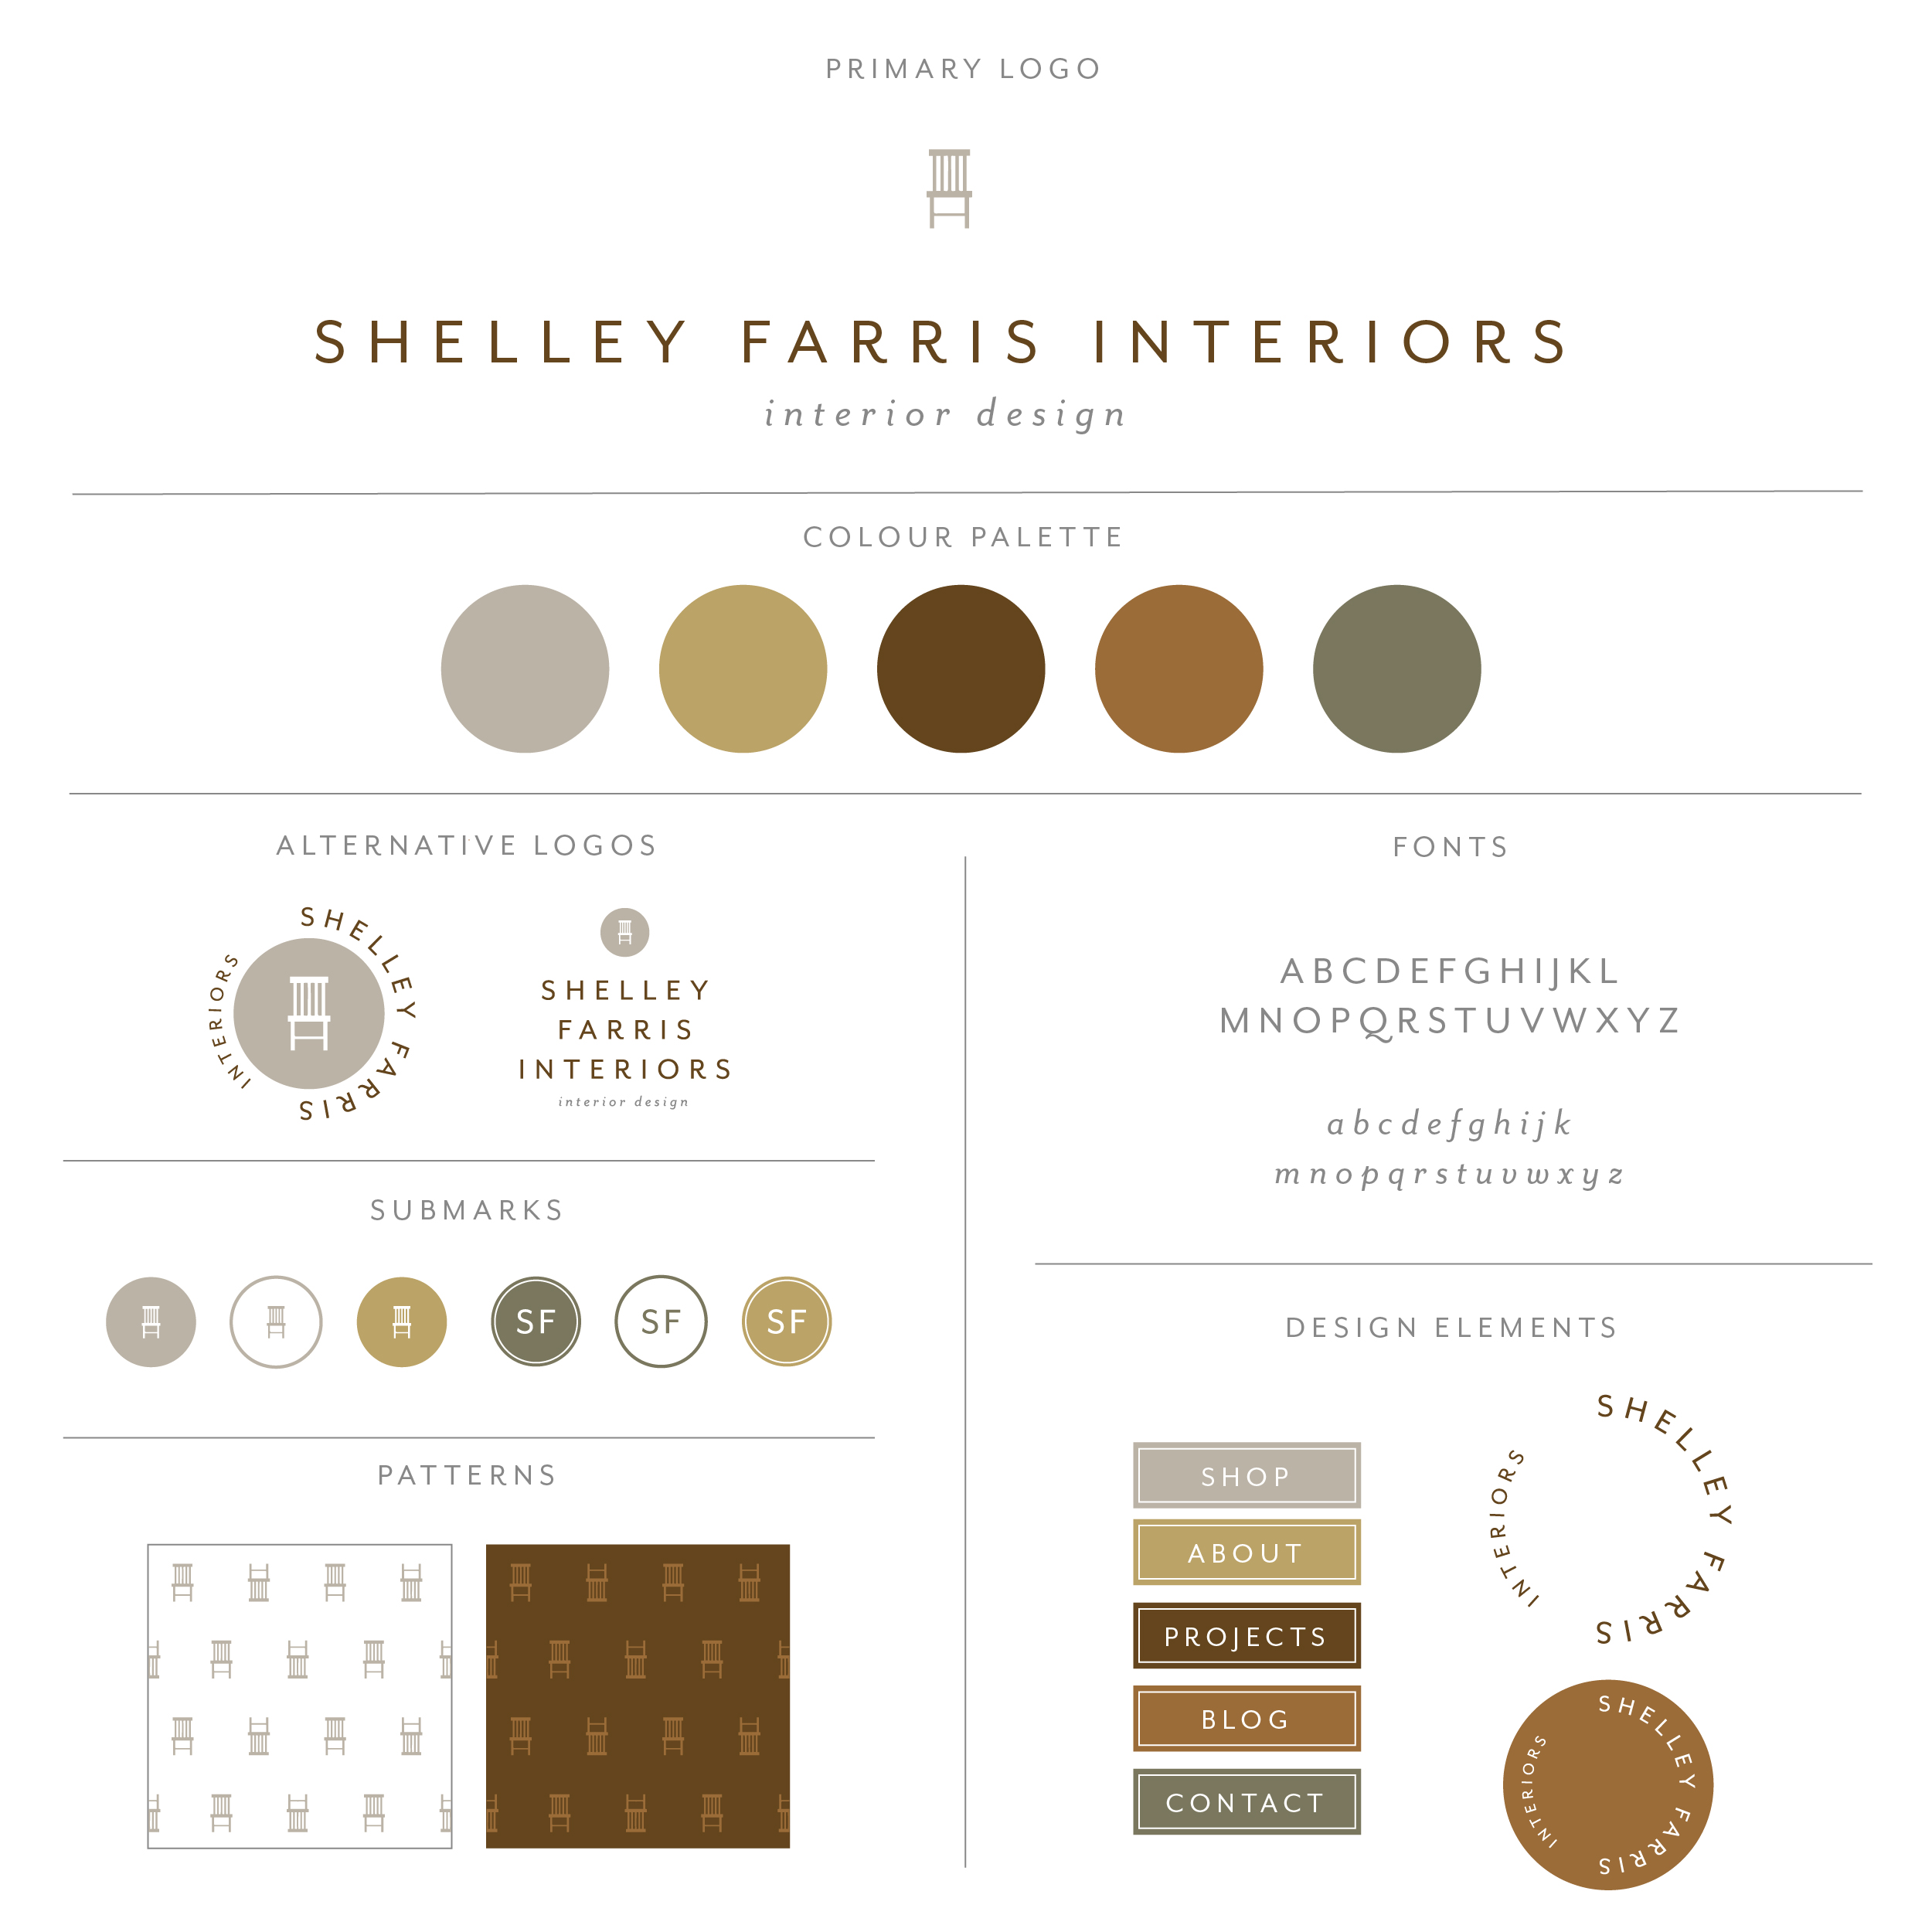 Shelley Farris Interiors collection intended for the interior designer with rich browns and greens, a woodworkers dream. Dark and modern with wood tones